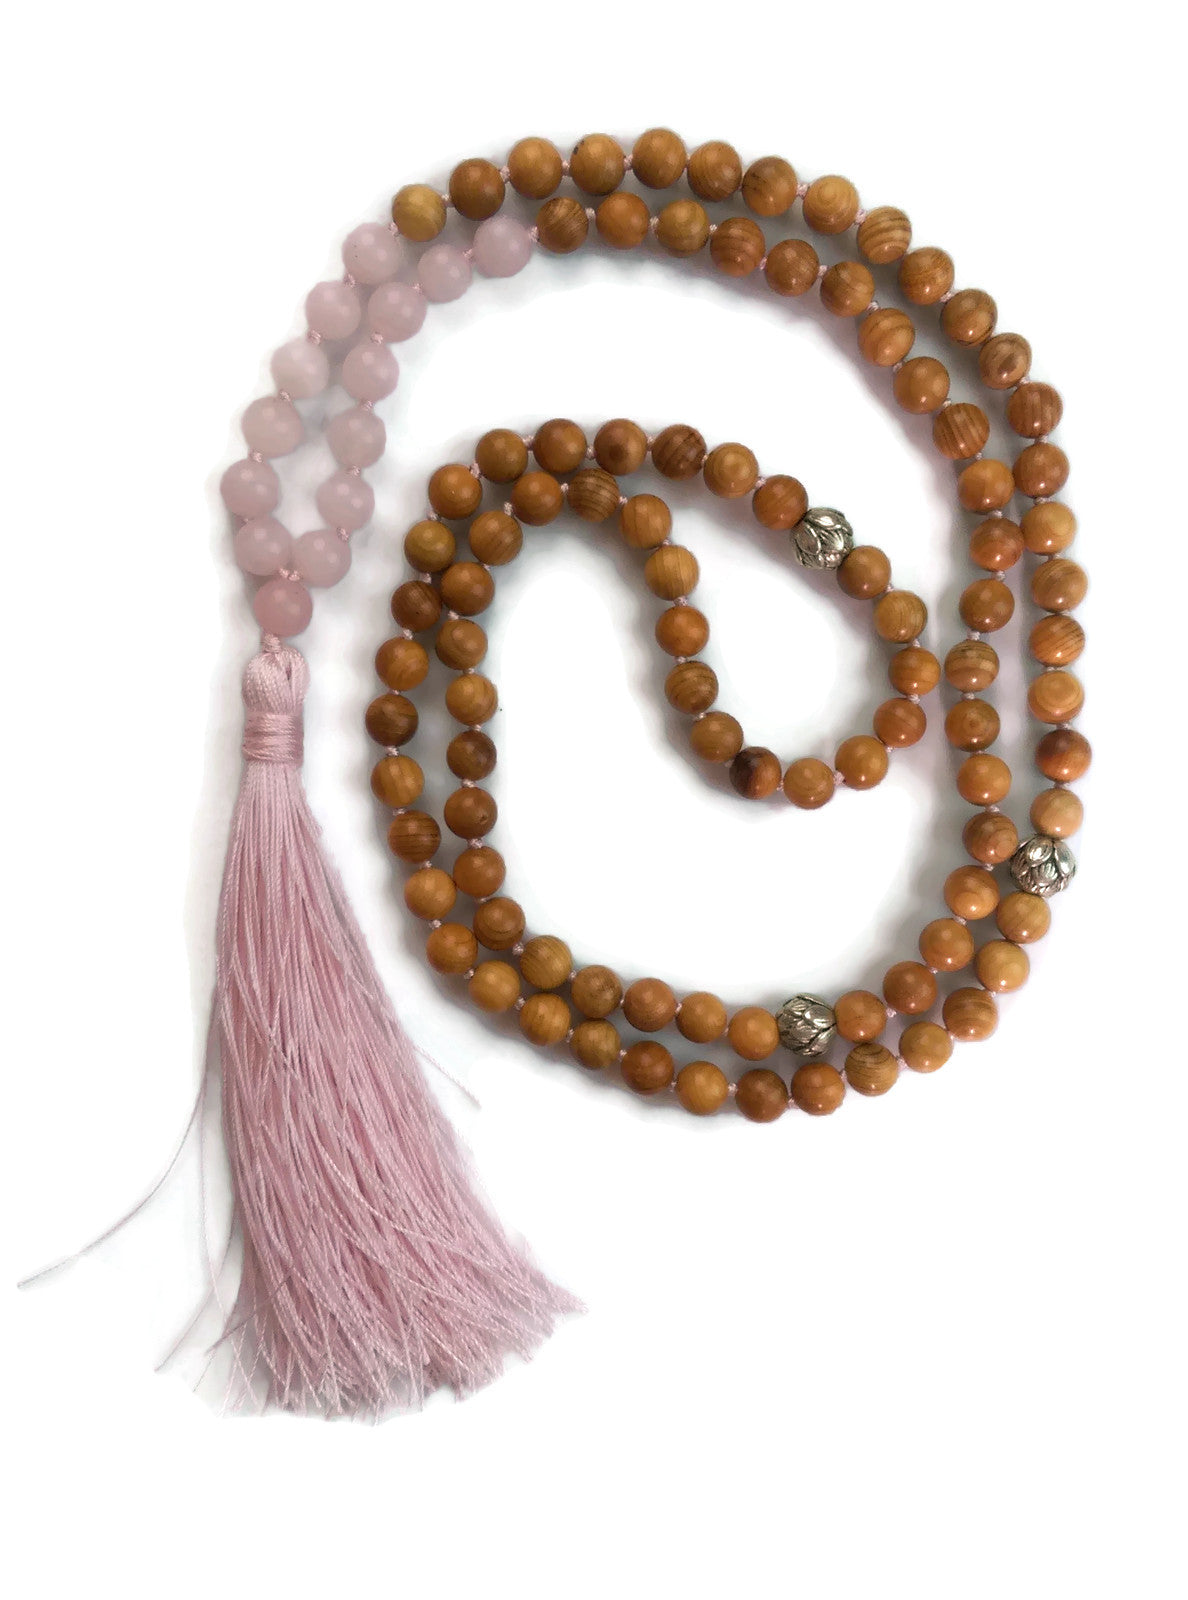 Earth Chakra Collection 8mm Rose Quartz and Yew Wood Traditional Knotted 108 Meditation Mala Necklace | Heart Chakra